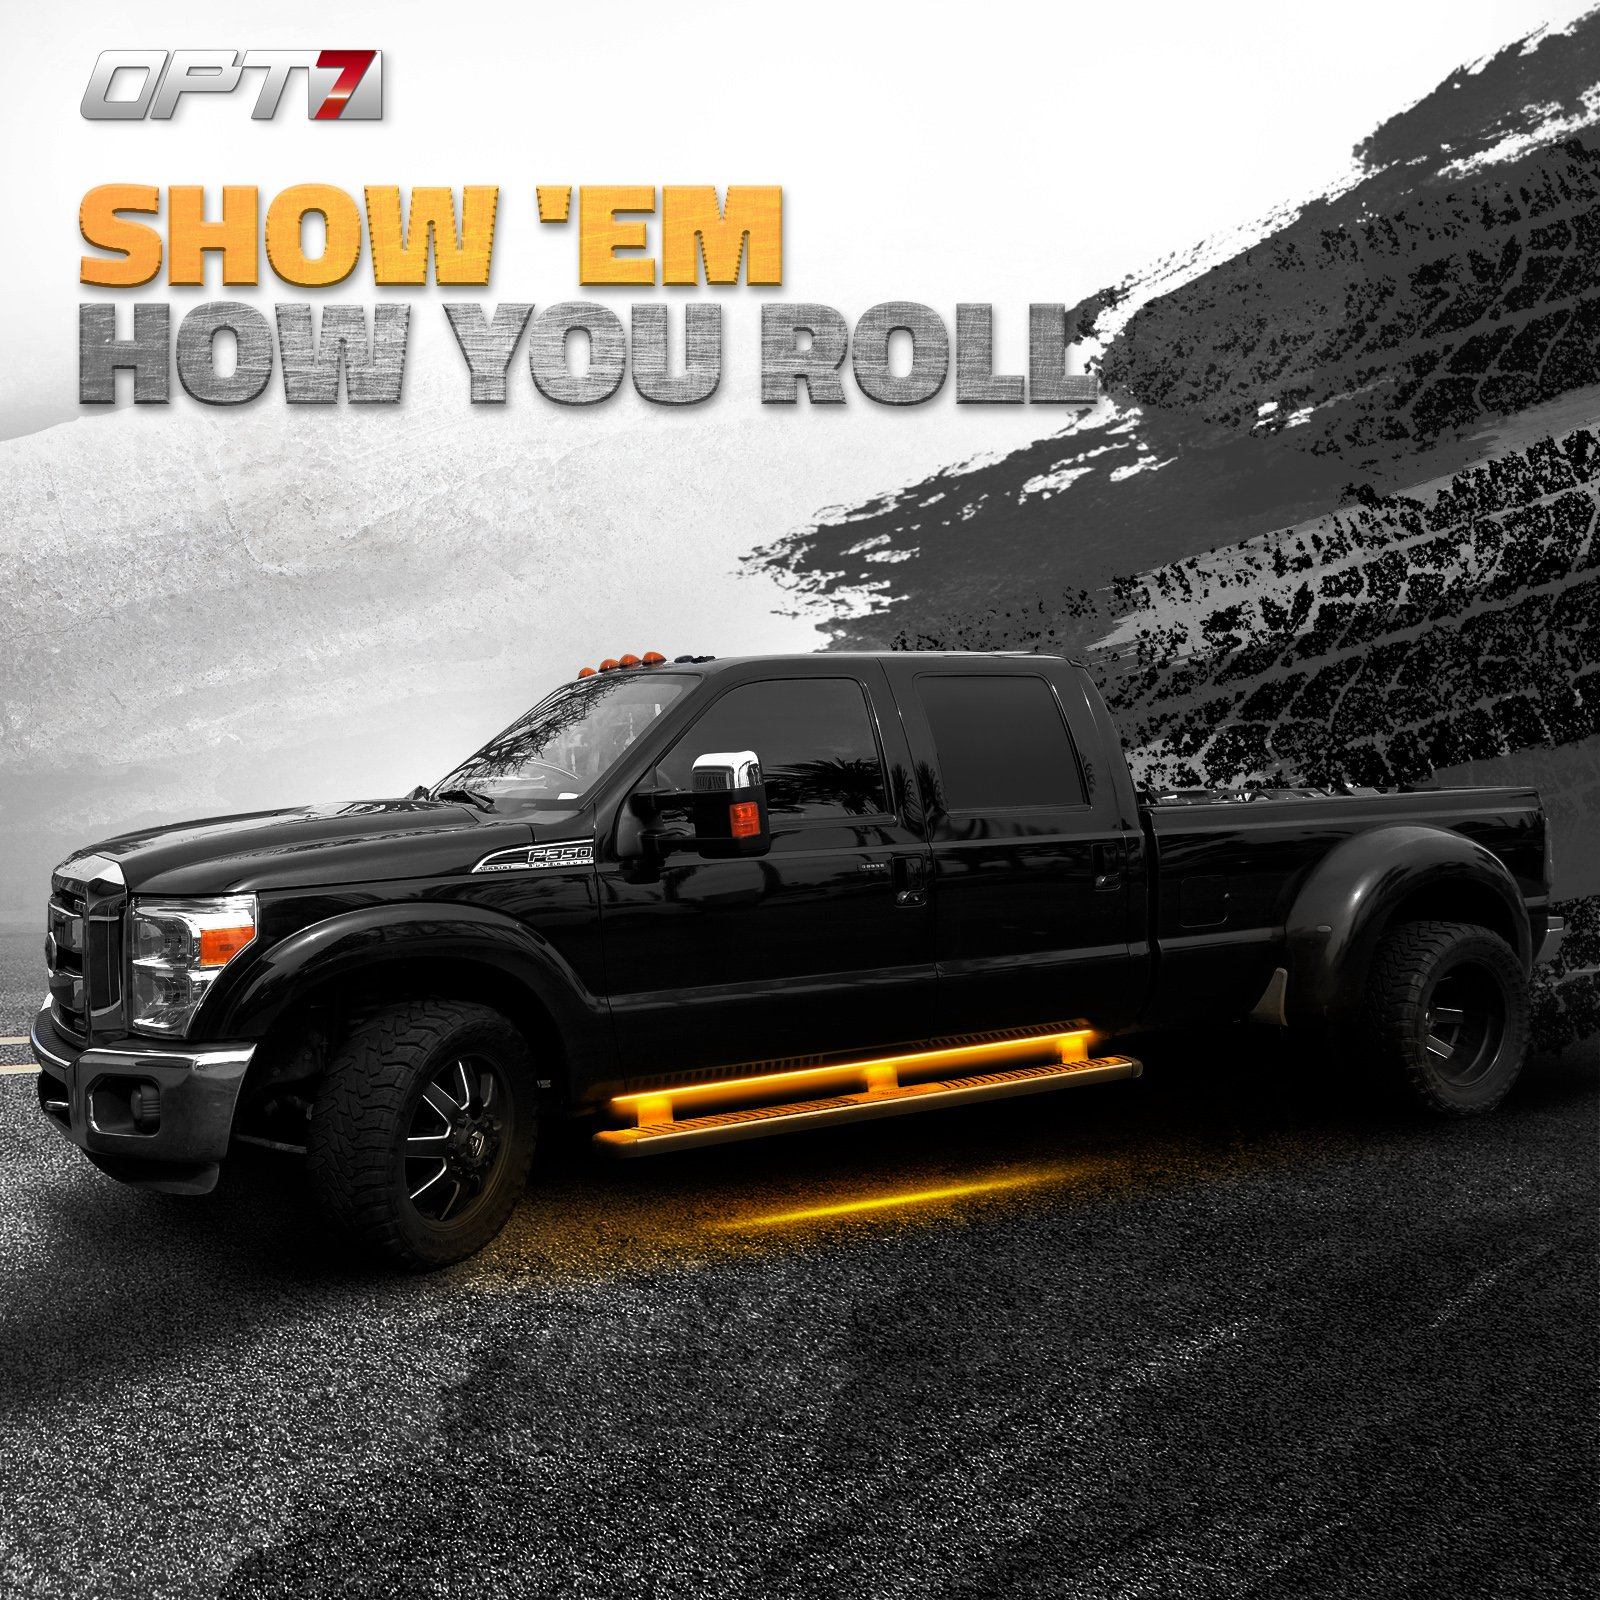 OPT7 2pc 60'' Side Kick Running Board LED Strips w/Amber Turn Signal, DRL, and White Courtesy Lights by OPT7 (Image #2)